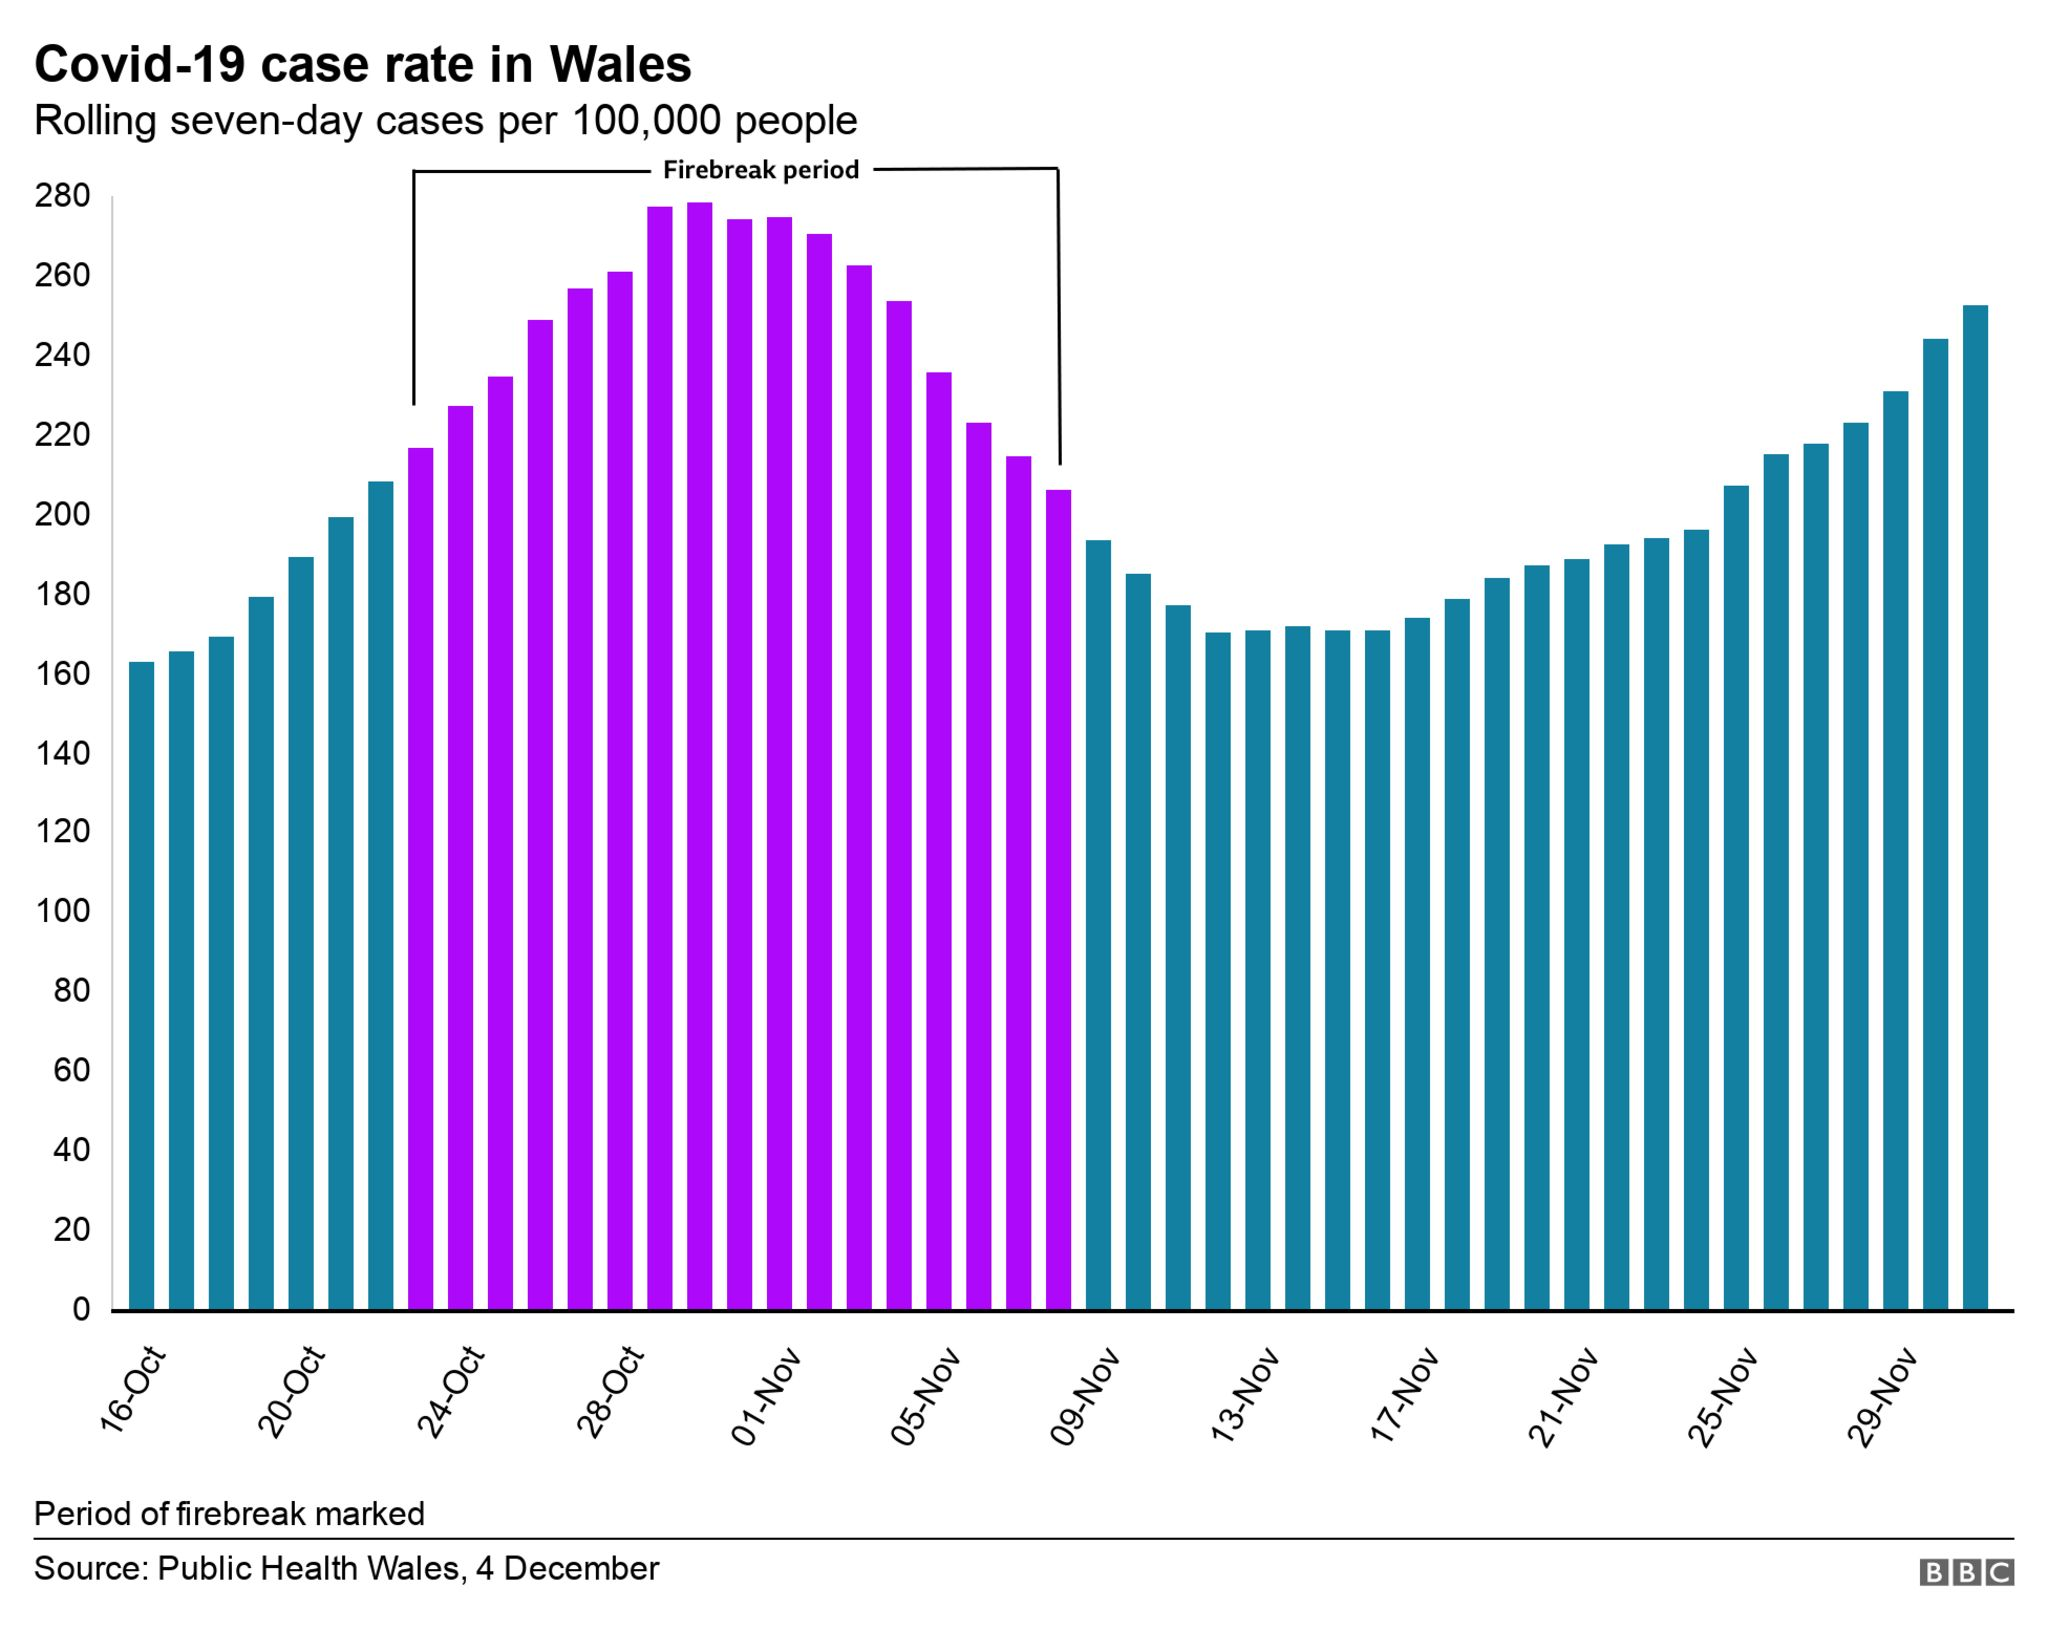 Wales case rate chart